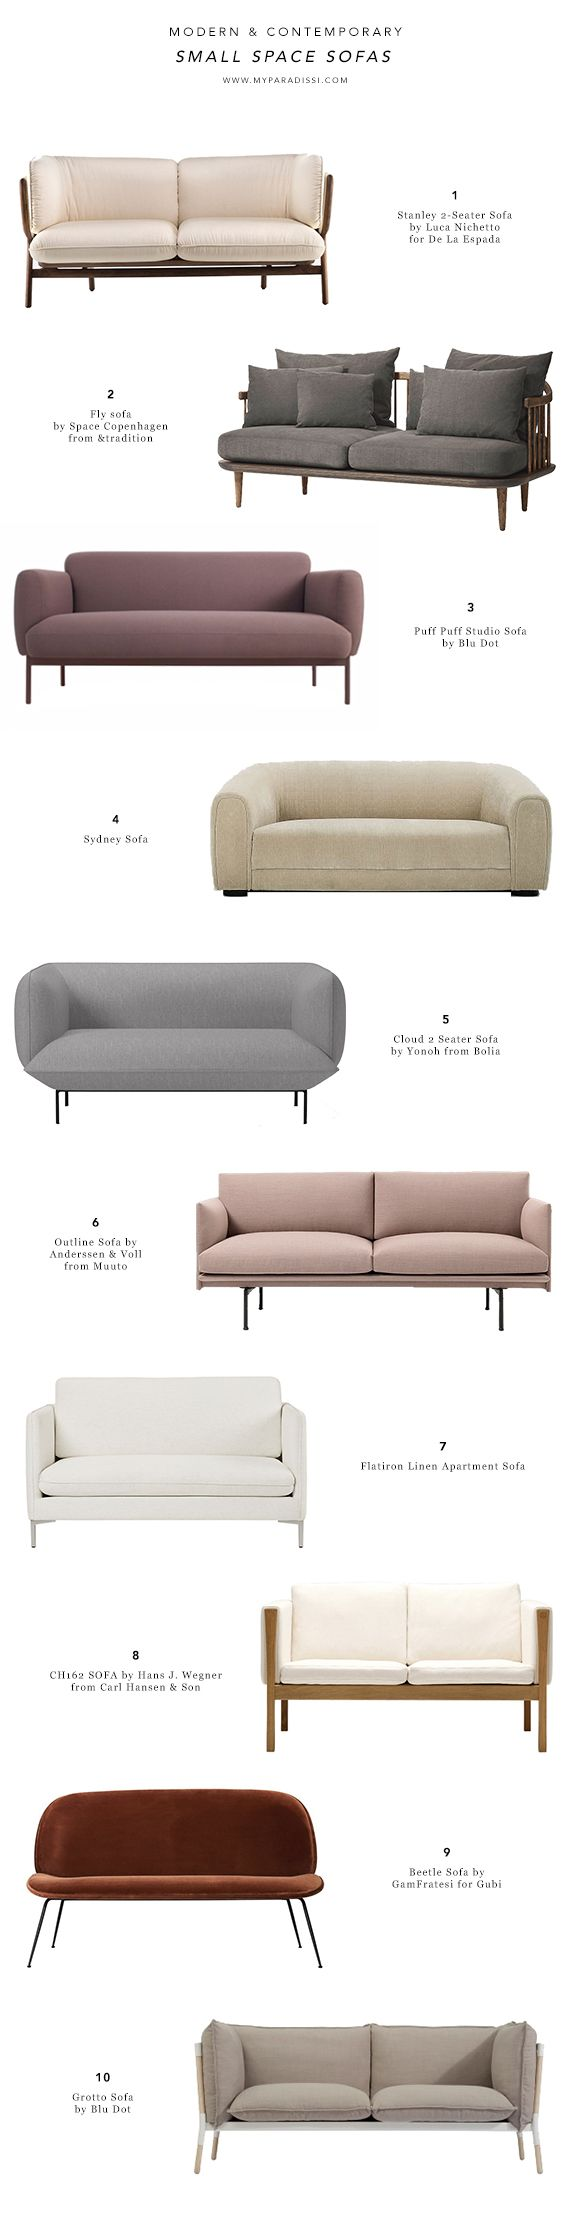 10 BEST: Contemporary small space sofas